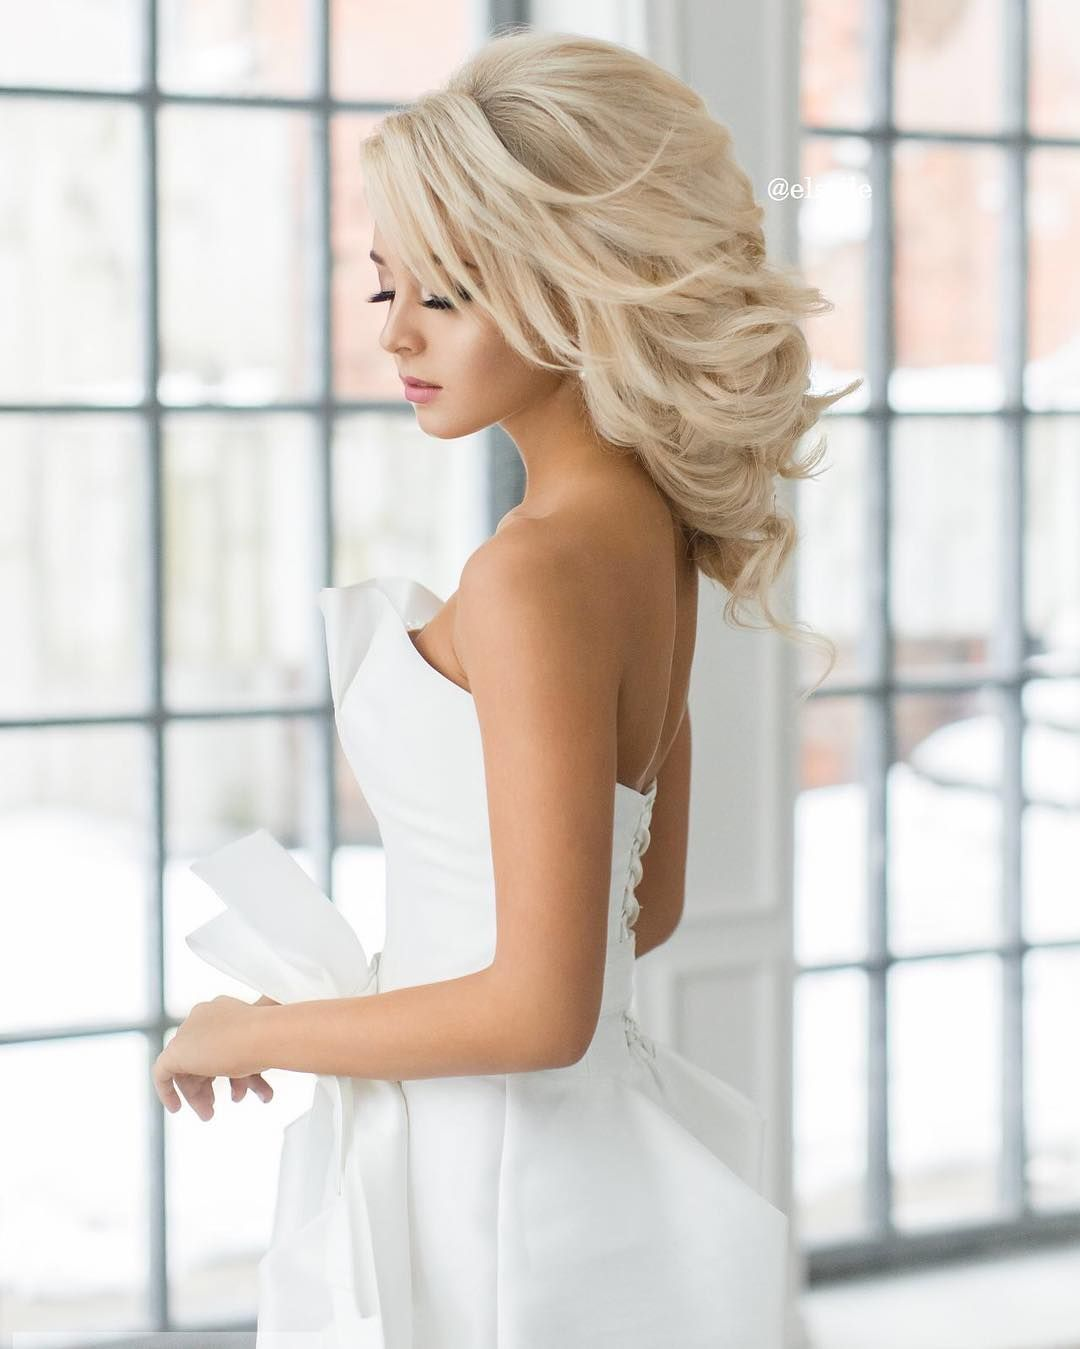 bridal hairstyle | wedding | bride | photo | blonde | updo | elegant ...